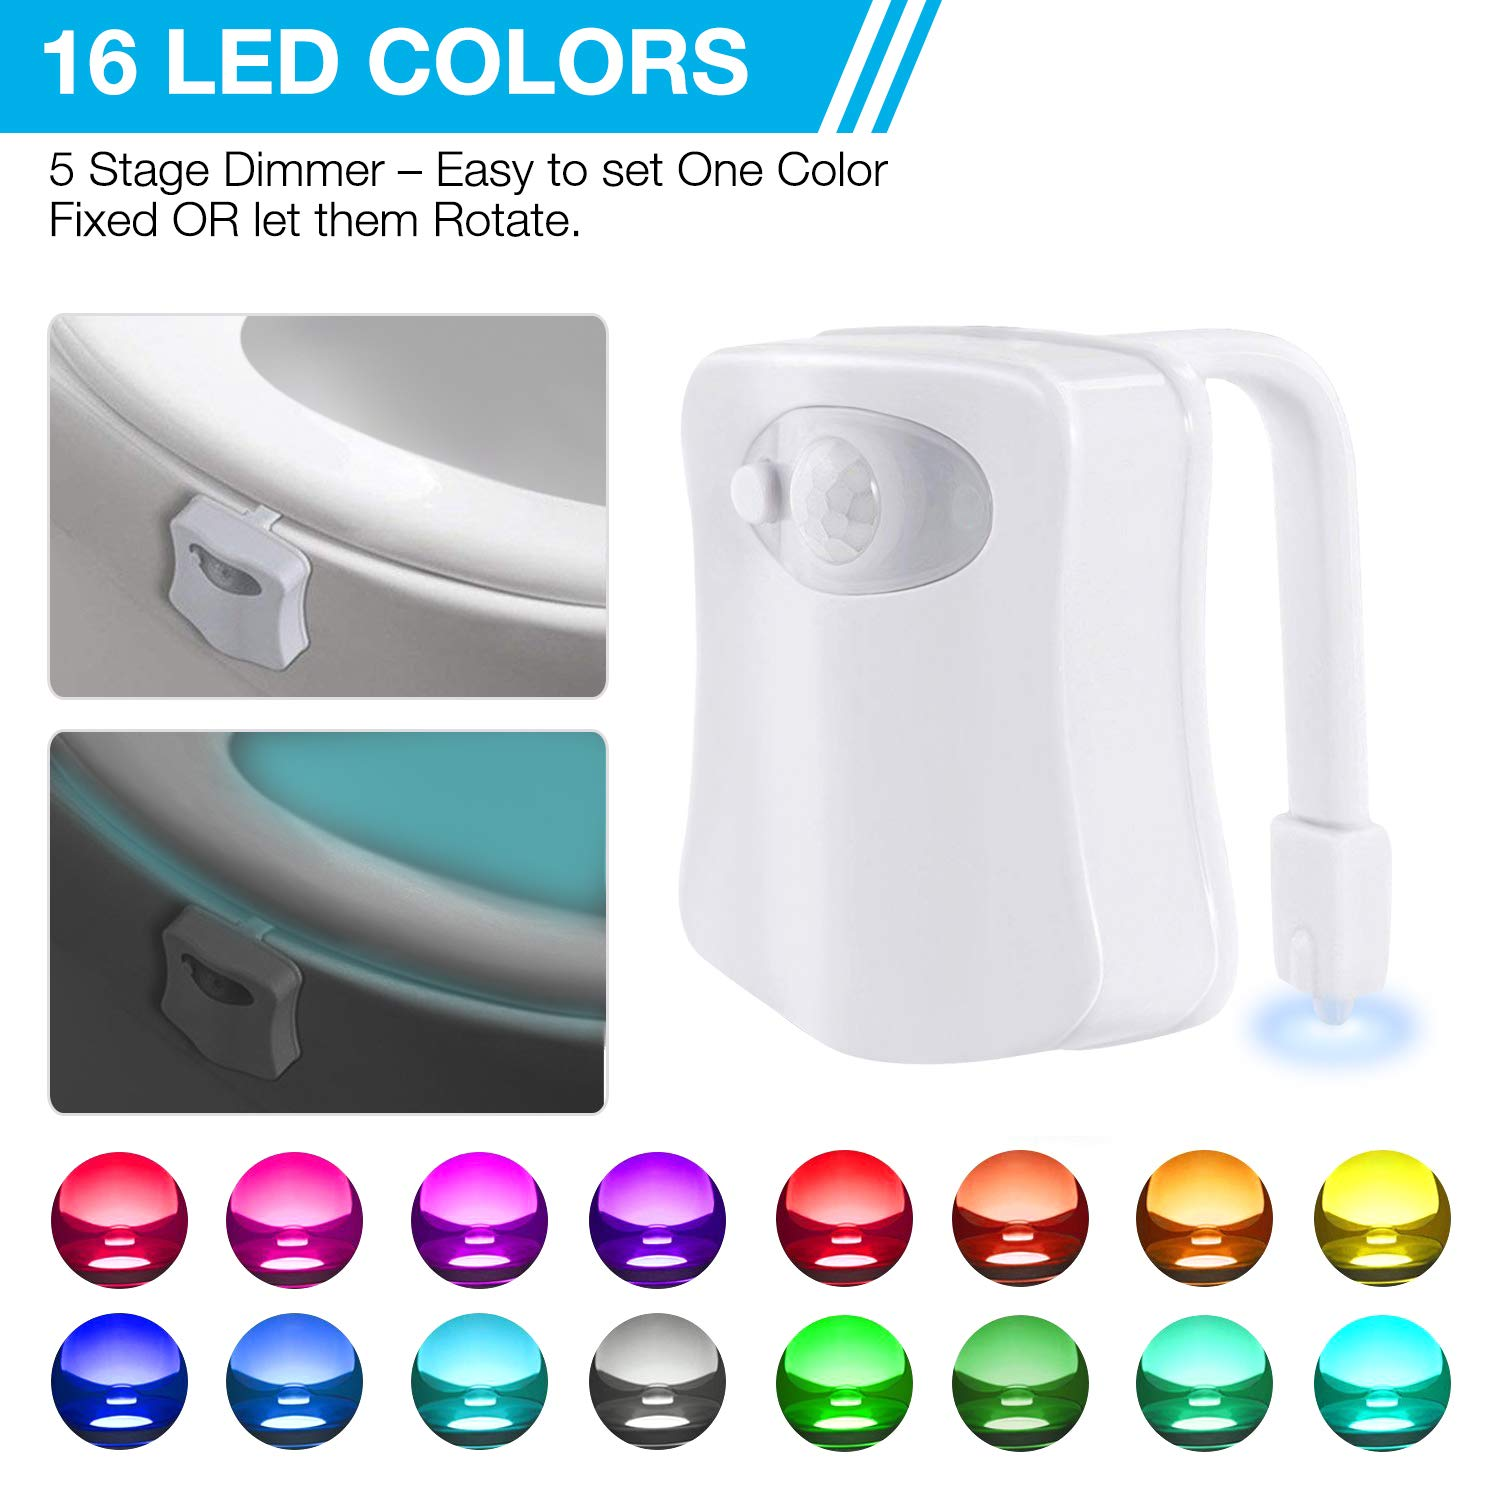 Shower Heads Home Improvement Strict Colorful Changing Led Shower Head Led Shower Head Color Changing Shower Head No Battery Bathroom Accessories Aromatic Flavor